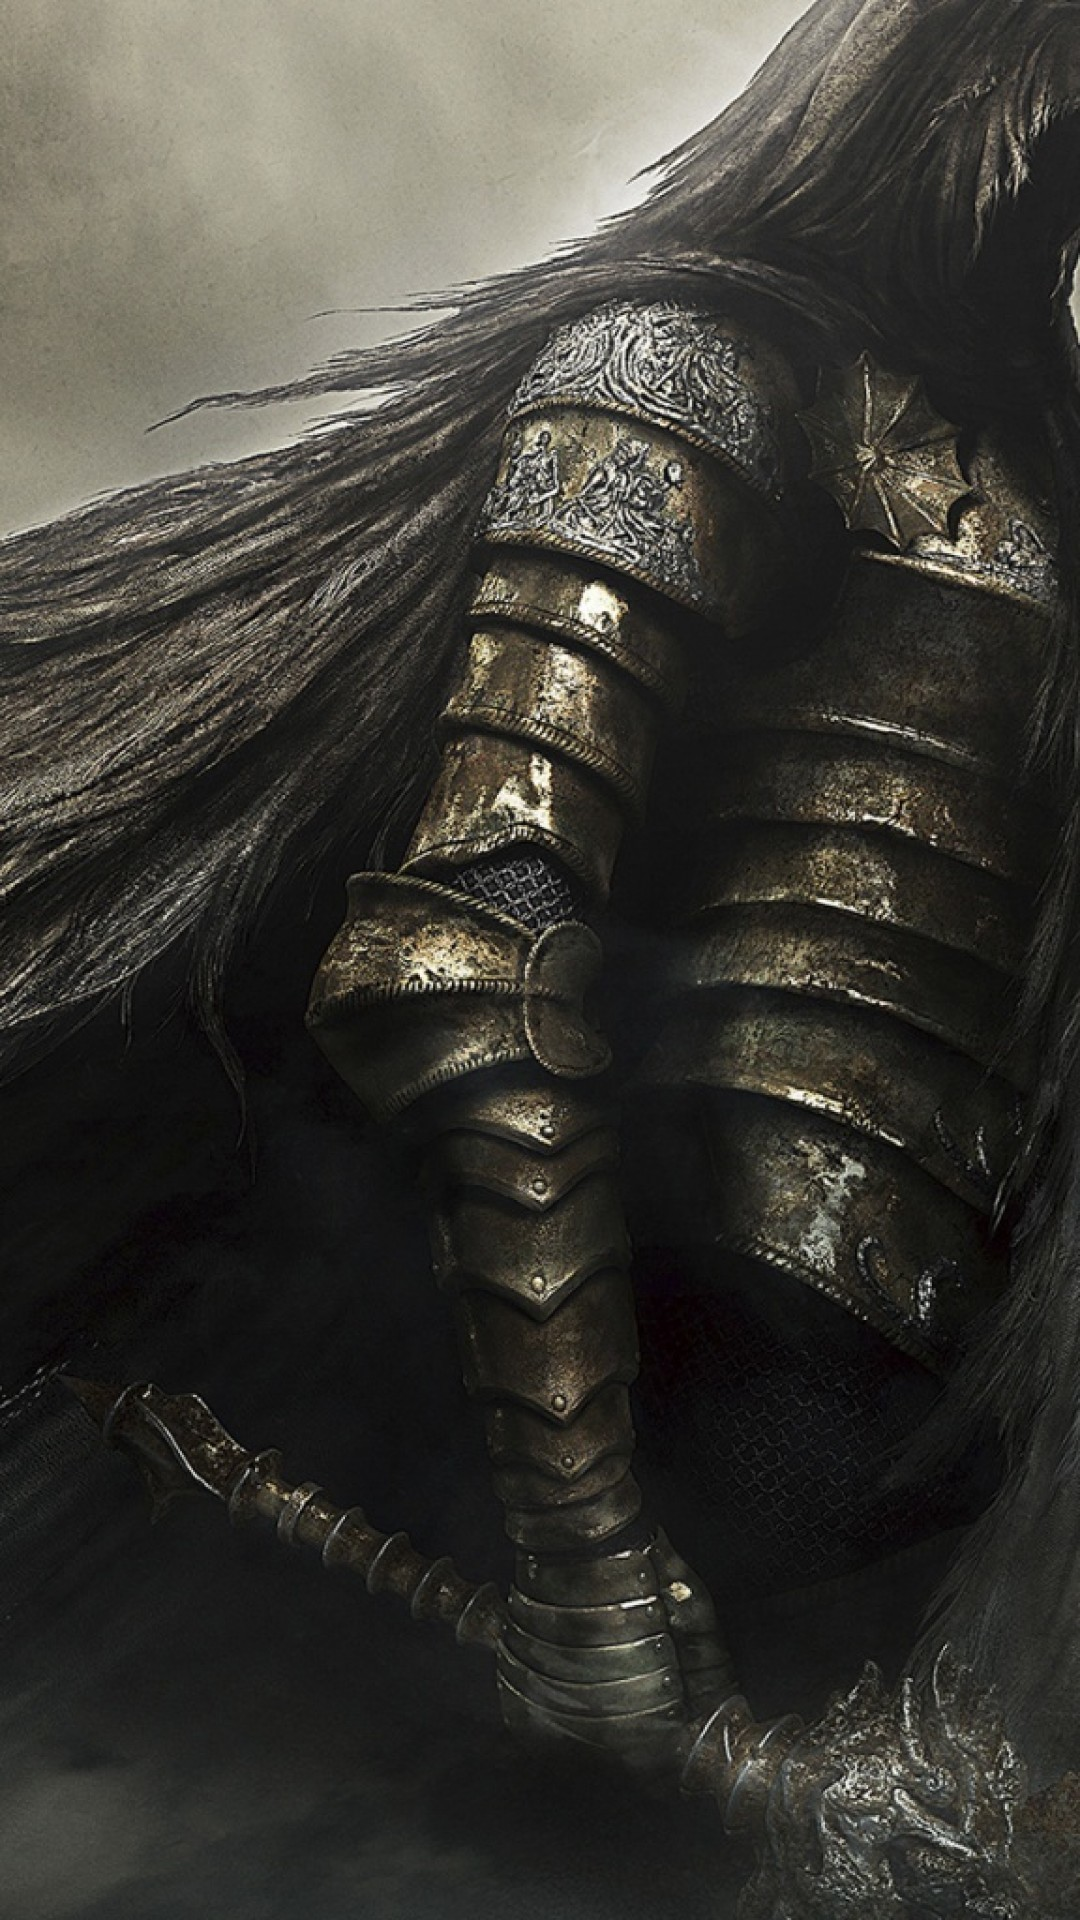 1080x1920 Dark Souls Ii Scholar Of The First Sin Wallpaper iPhone 6 Plus .